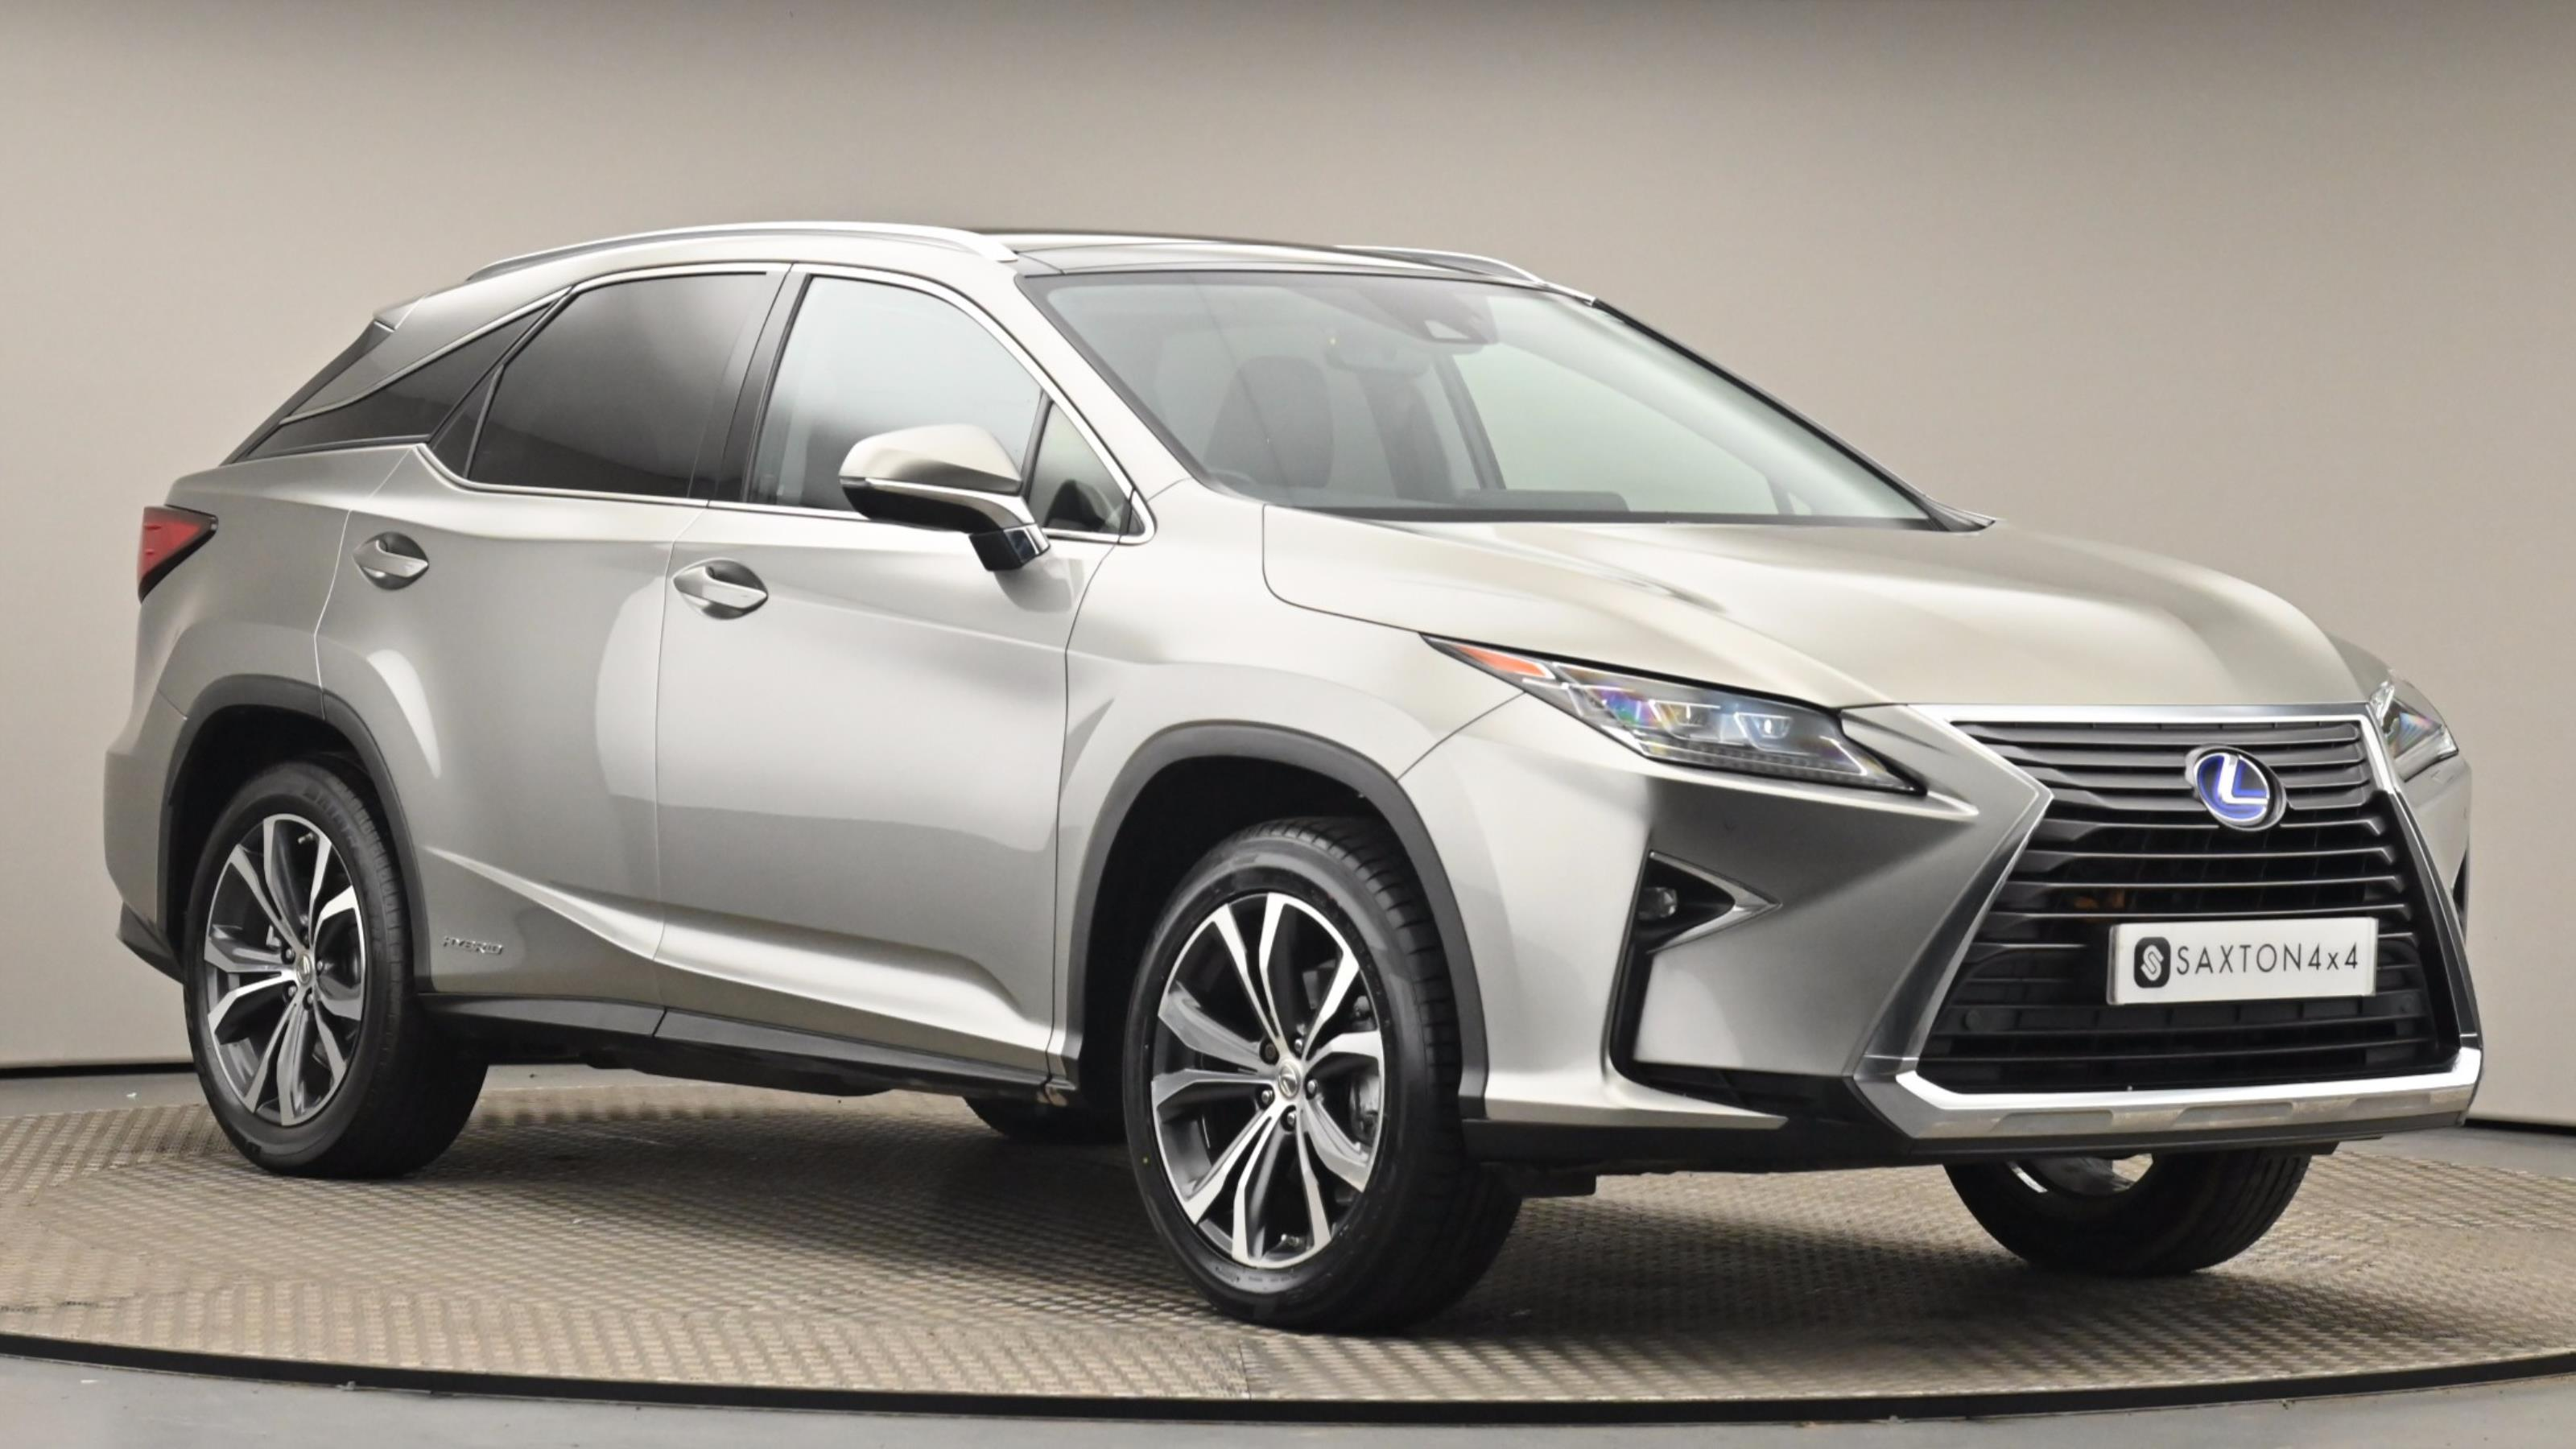 Used 2016 Lexus RX 450h 3.5 Luxury 5dr CVT [Pan roof] SILVER at Saxton4x4